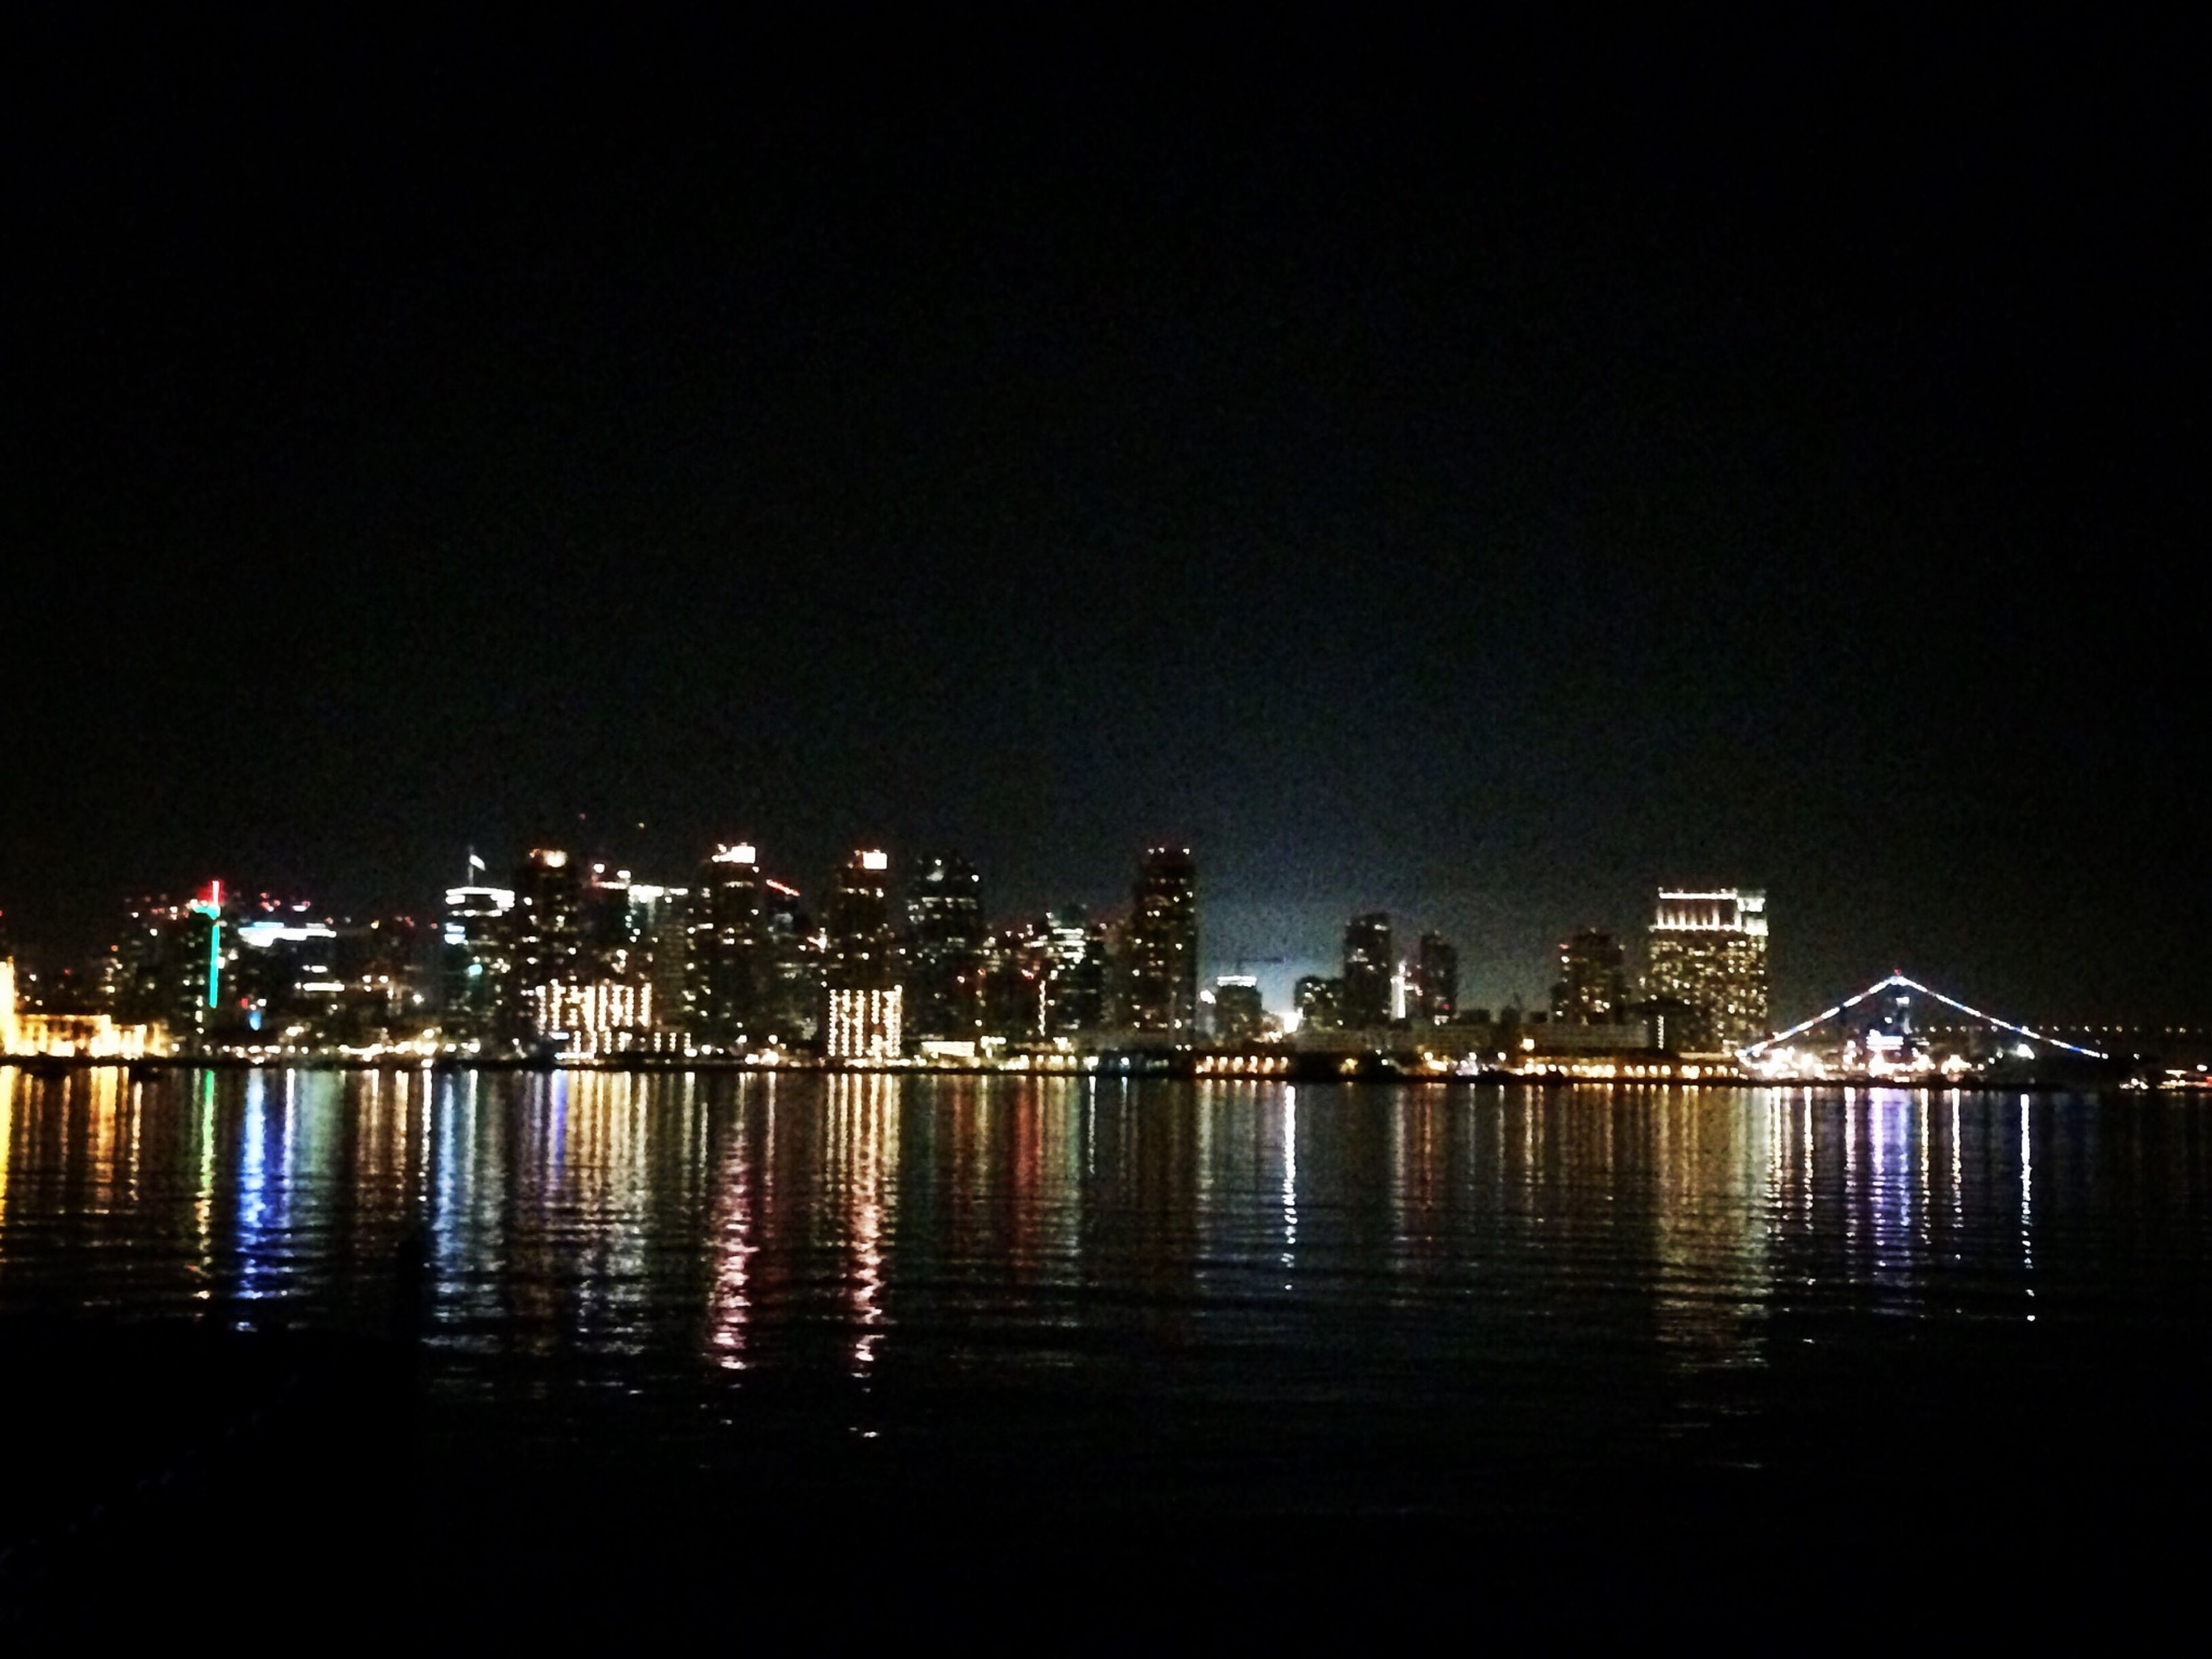 illuminated, night, water, waterfront, city, building exterior, architecture, built structure, reflection, river, cityscape, sea, skyscraper, clear sky, copy space, sky, urban skyline, modern, no people, outdoors